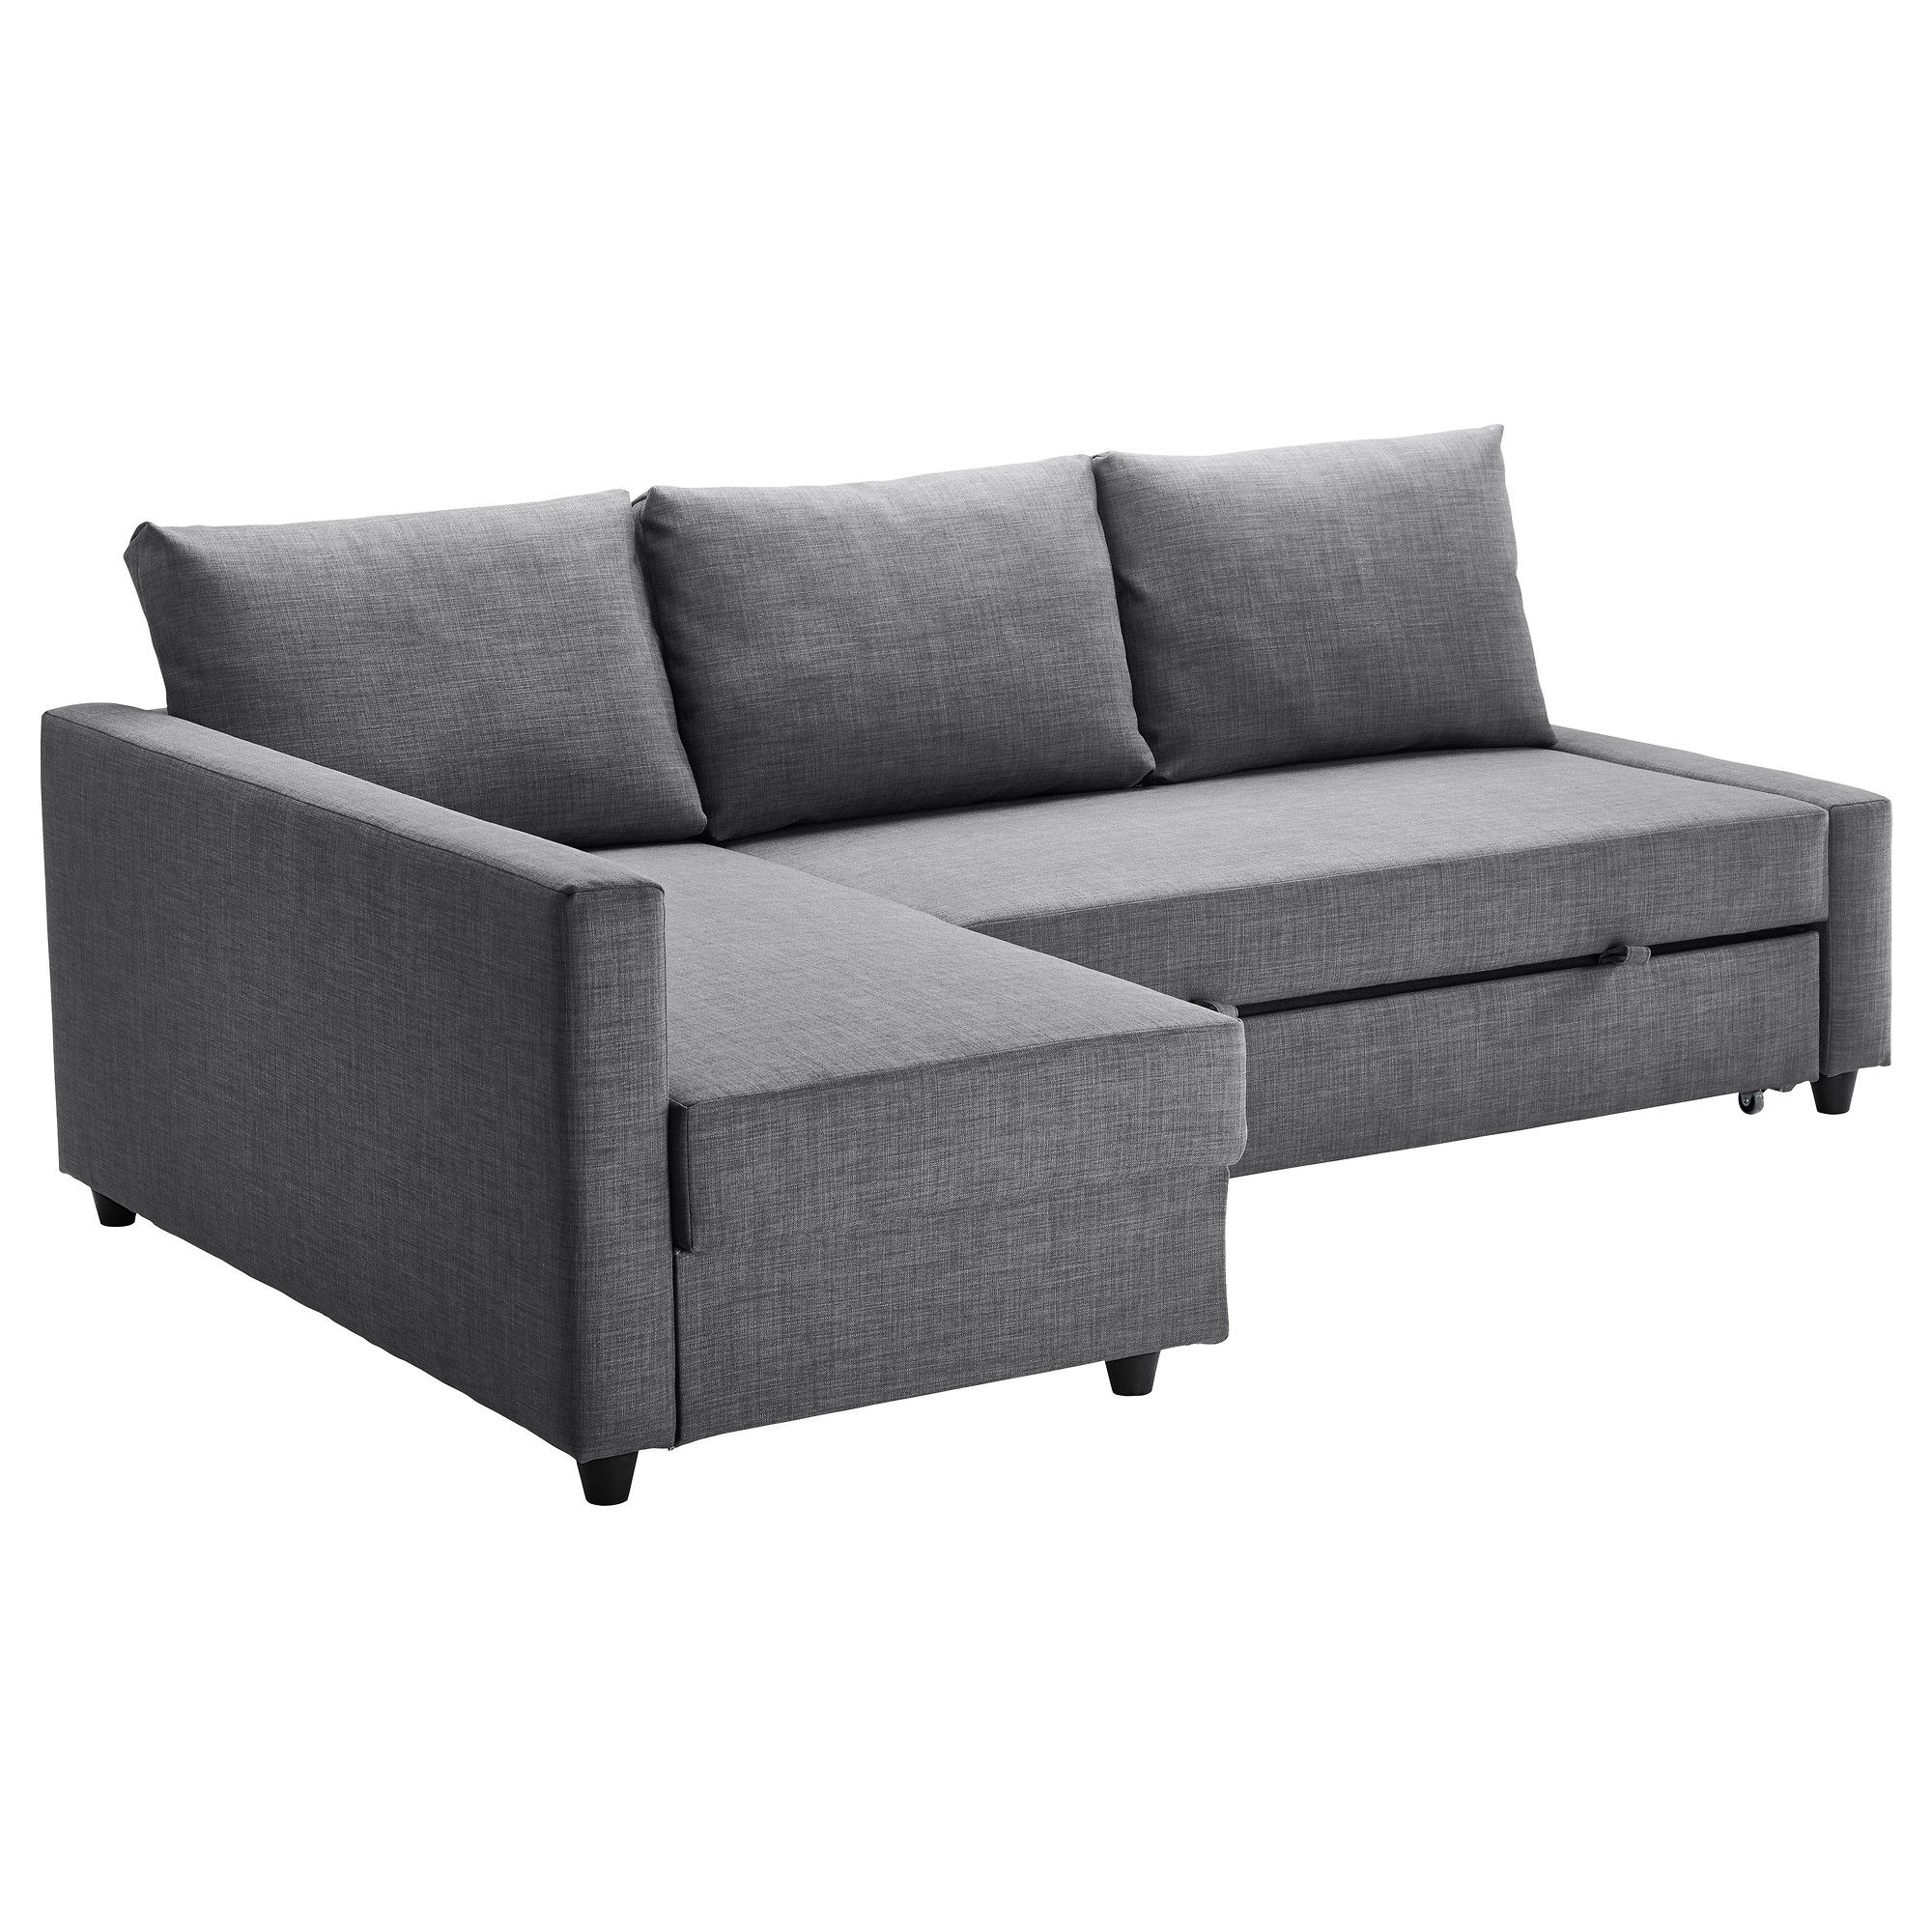 Preferred Sofabeds With Chaise Inside Ikea – Friheten, Sofa Bed With Chaise, Skiftebo Dark Gray, , , You (View 4 of 15)